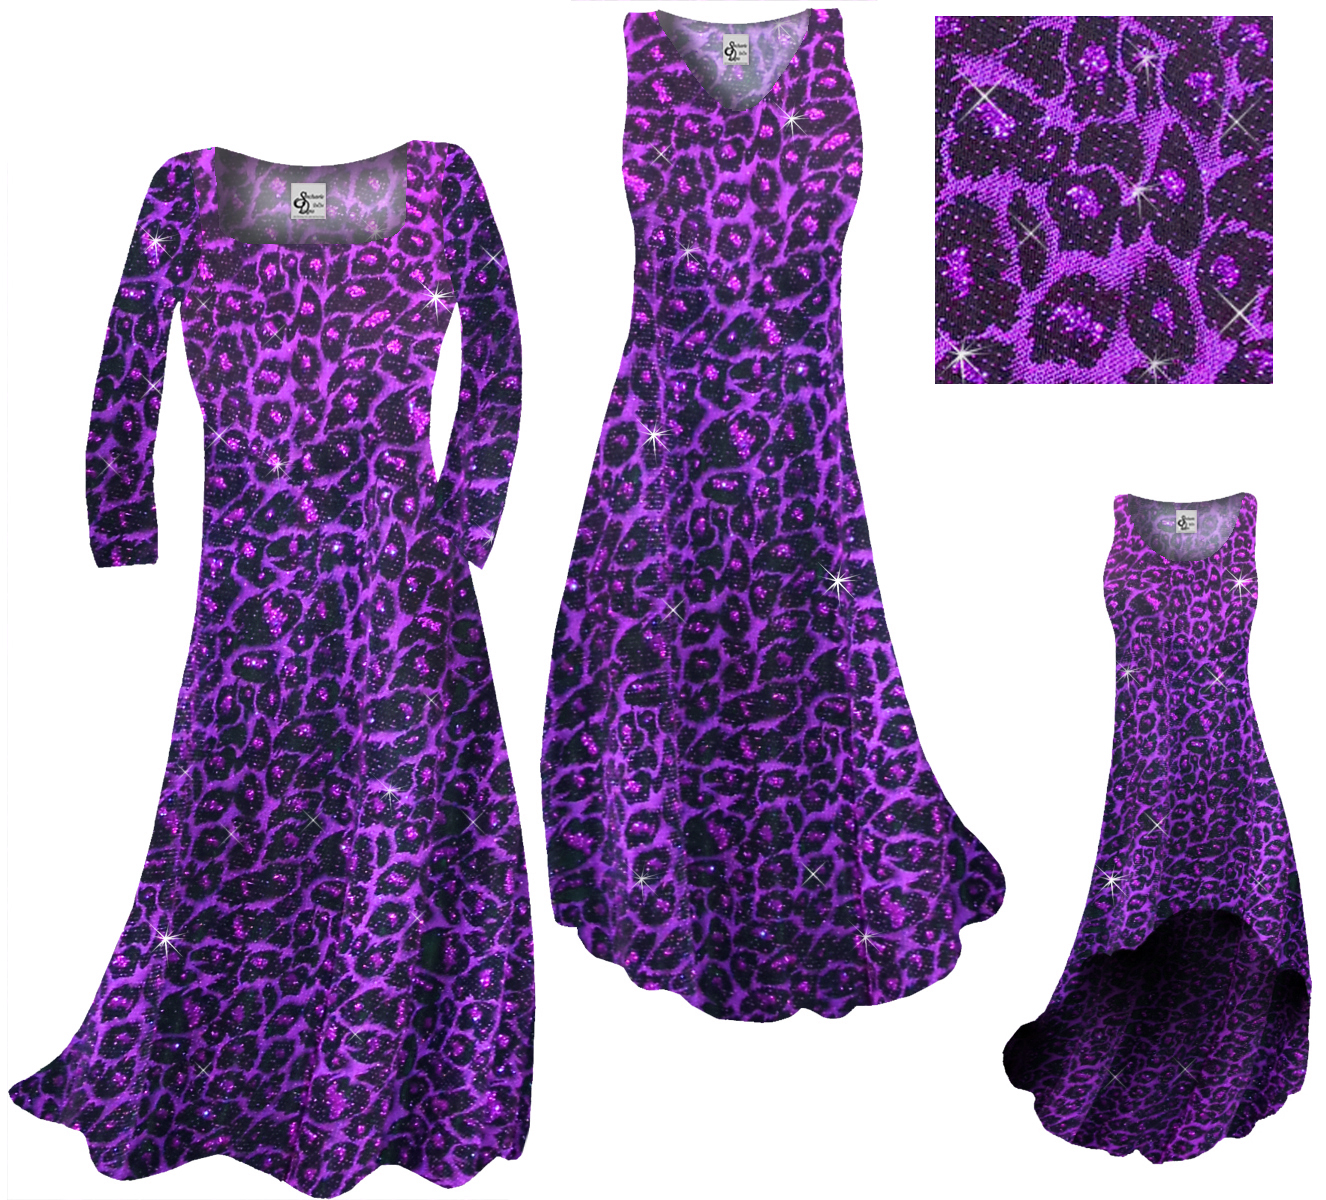 4ea4c0abf6aeb SOLD OUT! SALE! Customizable Purple Leopard Glittery Print Plus Size A-Line  Dress 1x